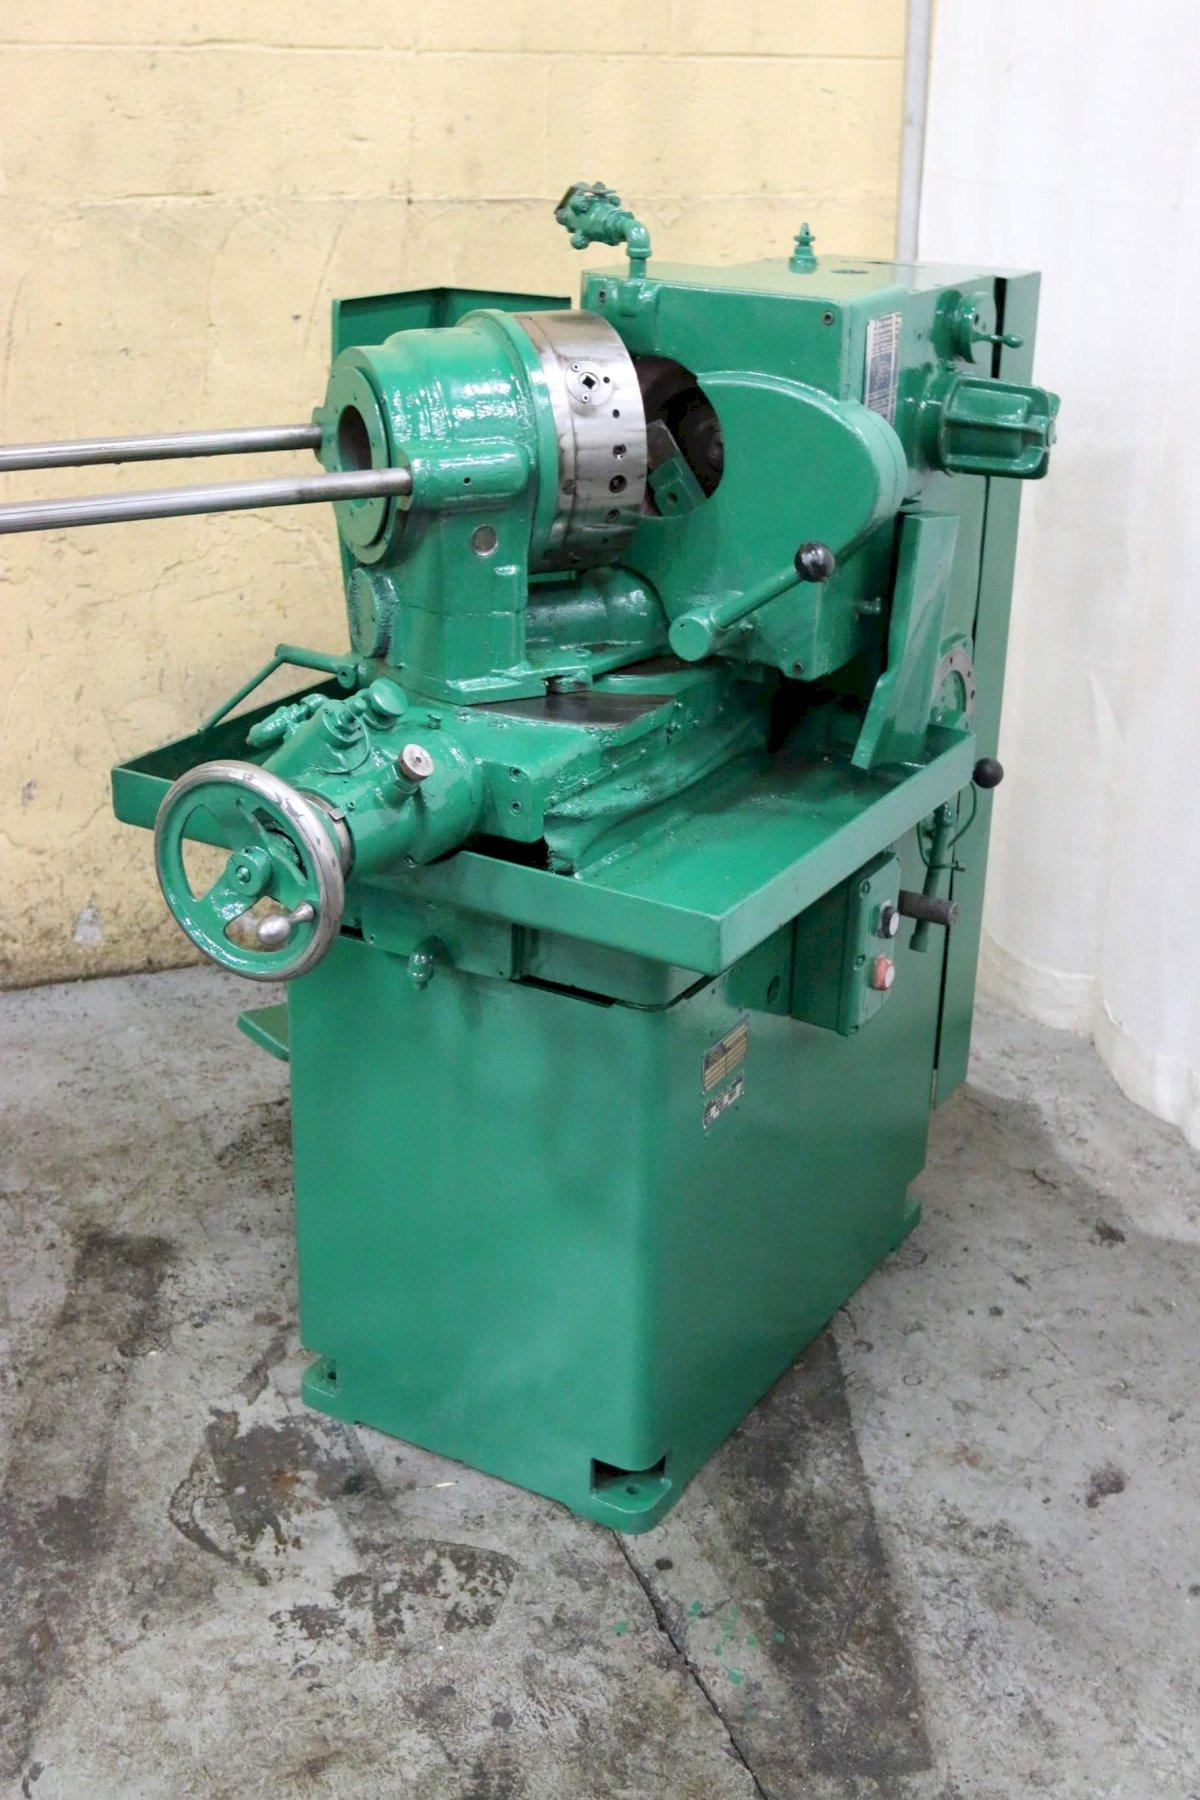 3' OLIVER MODEL #600 SEMI AUTOMATIC DRILL GRINDER: STOCK #65959